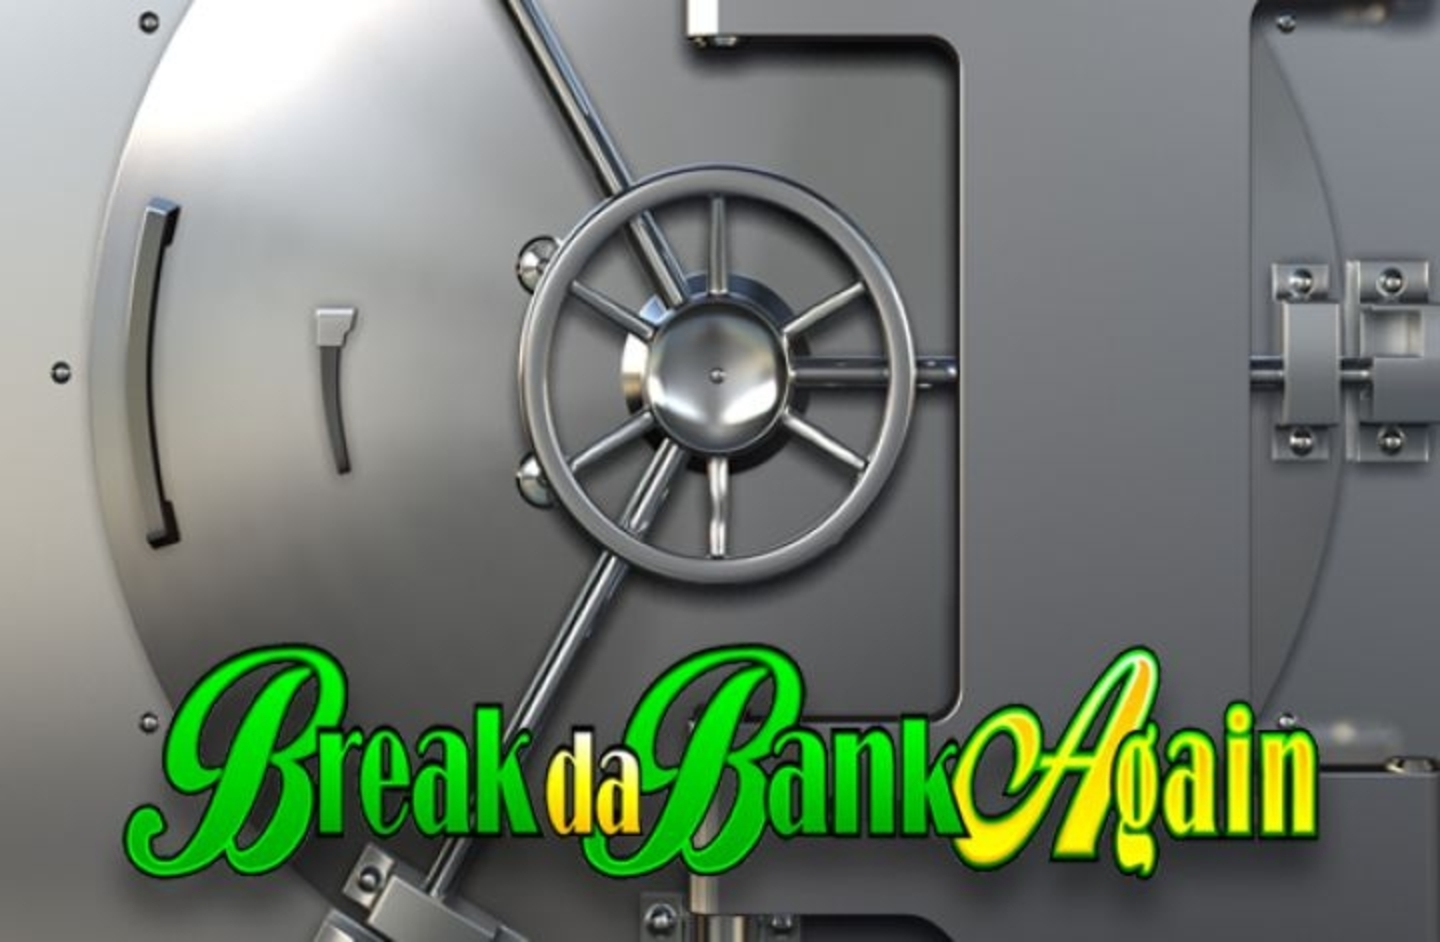 The Break da Bank Again Online Slot Demo Game by Microgaming